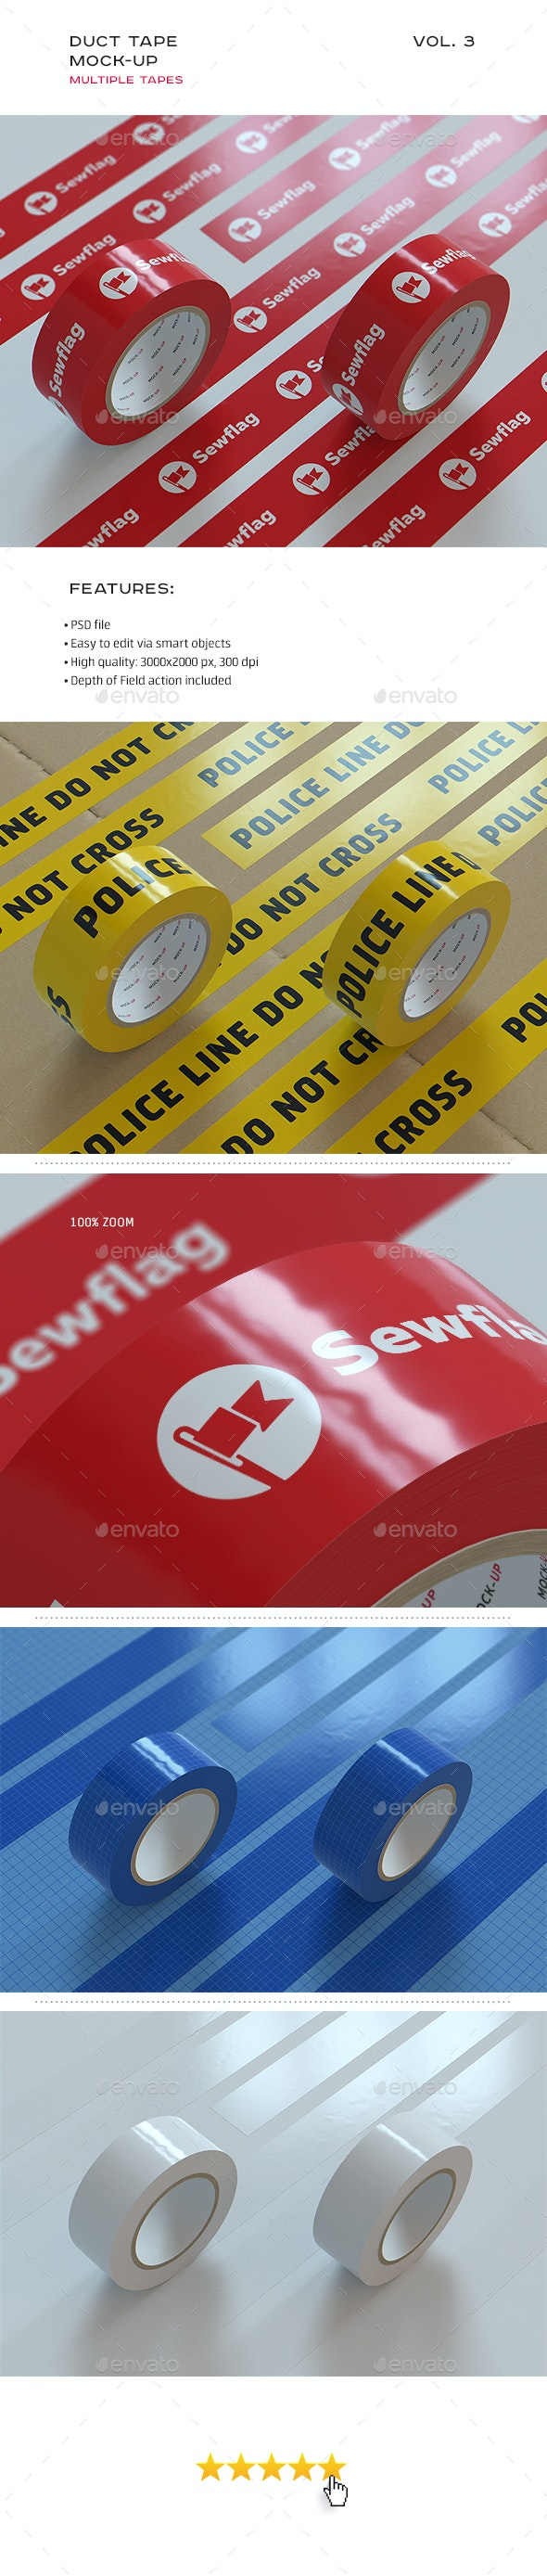 Duct Tape Mock-up vol. 3 - Stationery Print